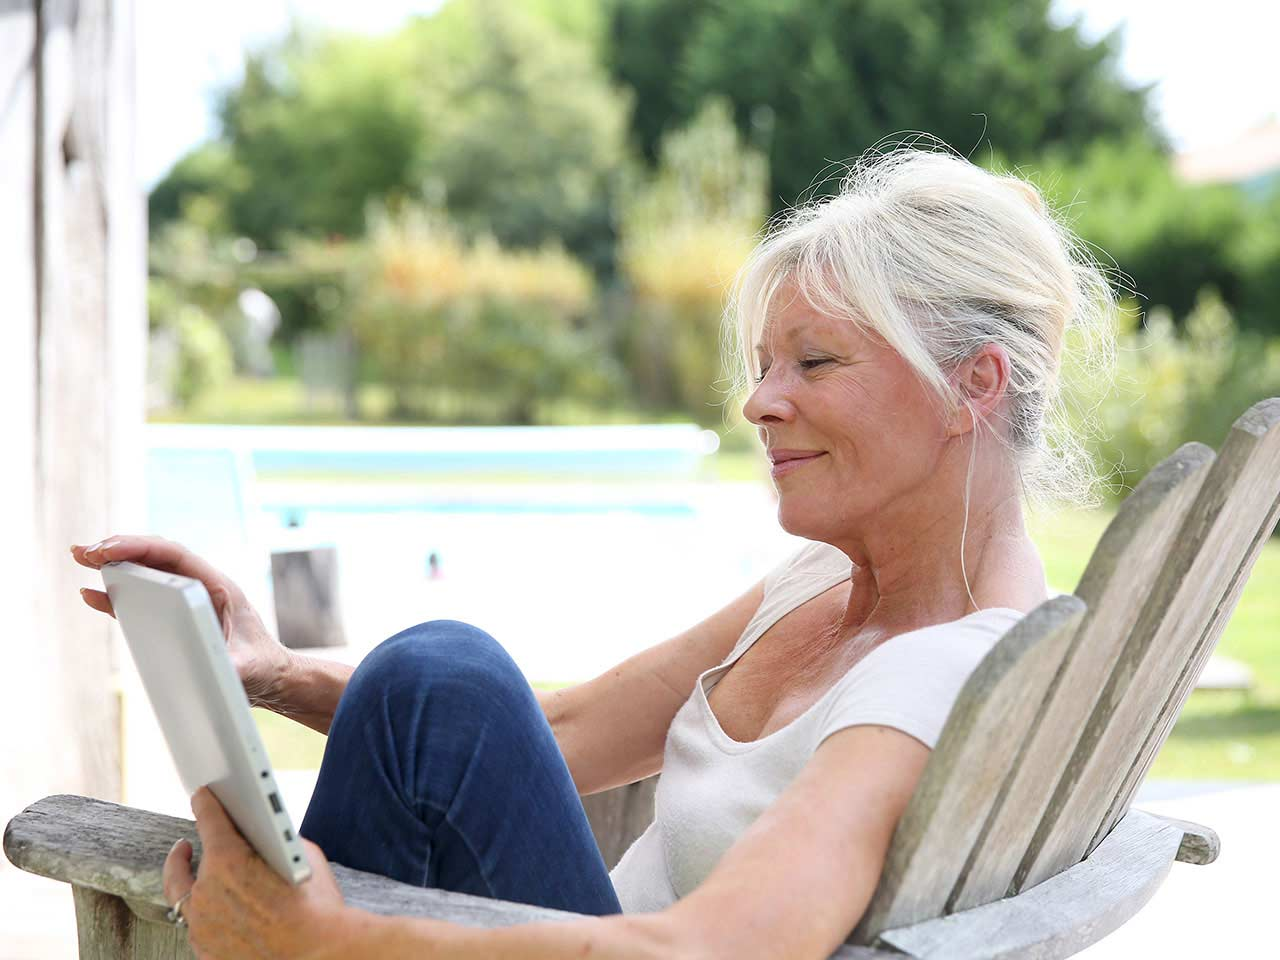 Mature lady using tablet